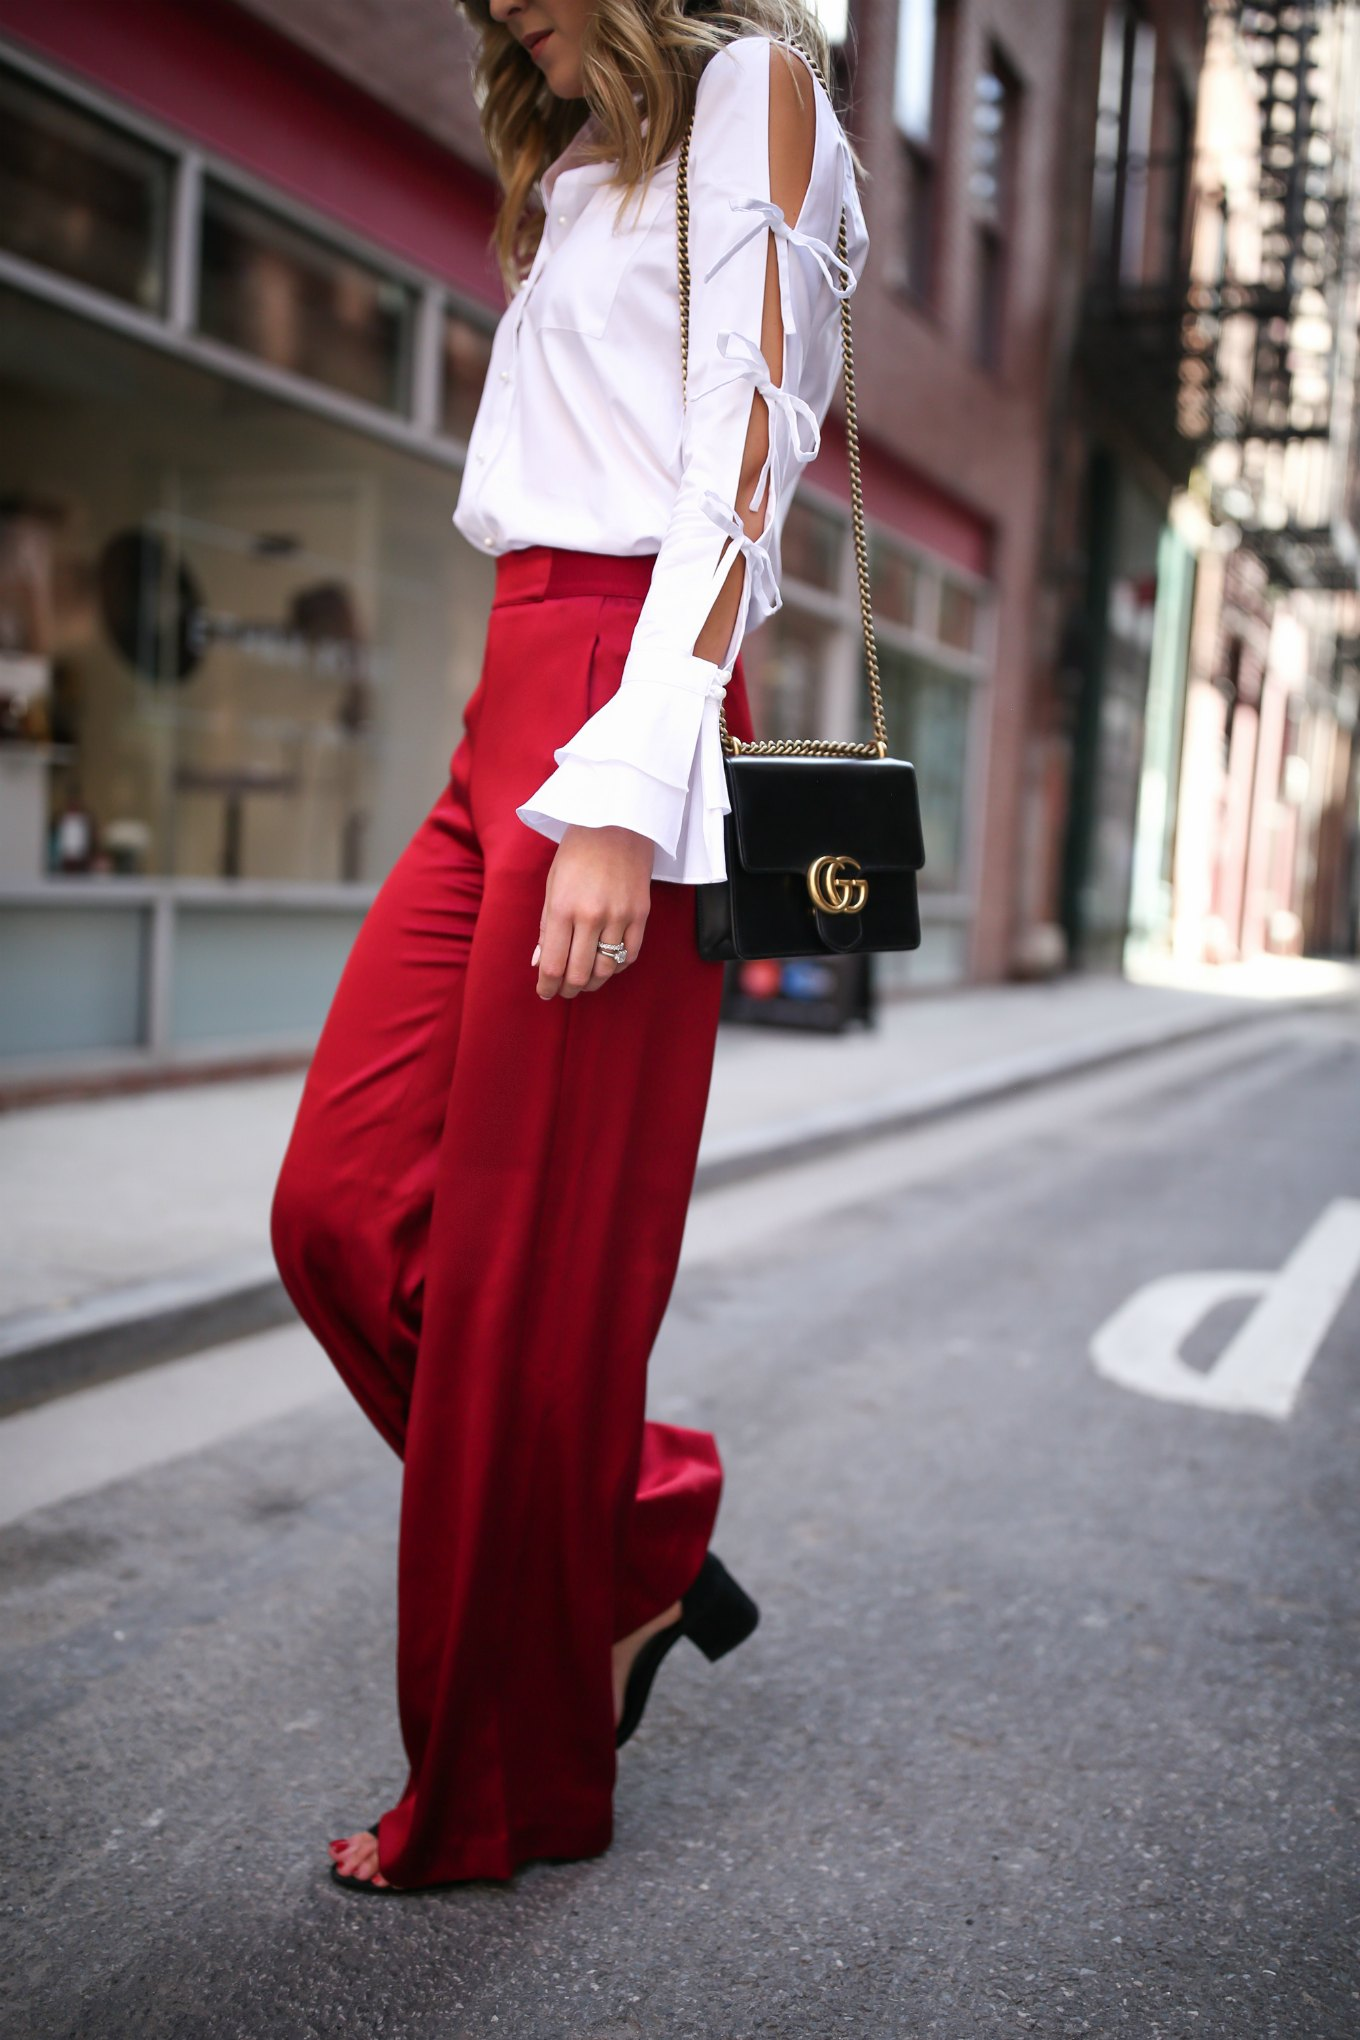 spring-summer-trends-statement-sleeves-split-ties-bell-red-satin-wide-leg-pants-alice-olivia-jonathan-simkhai-cat-eye-sunglasses10